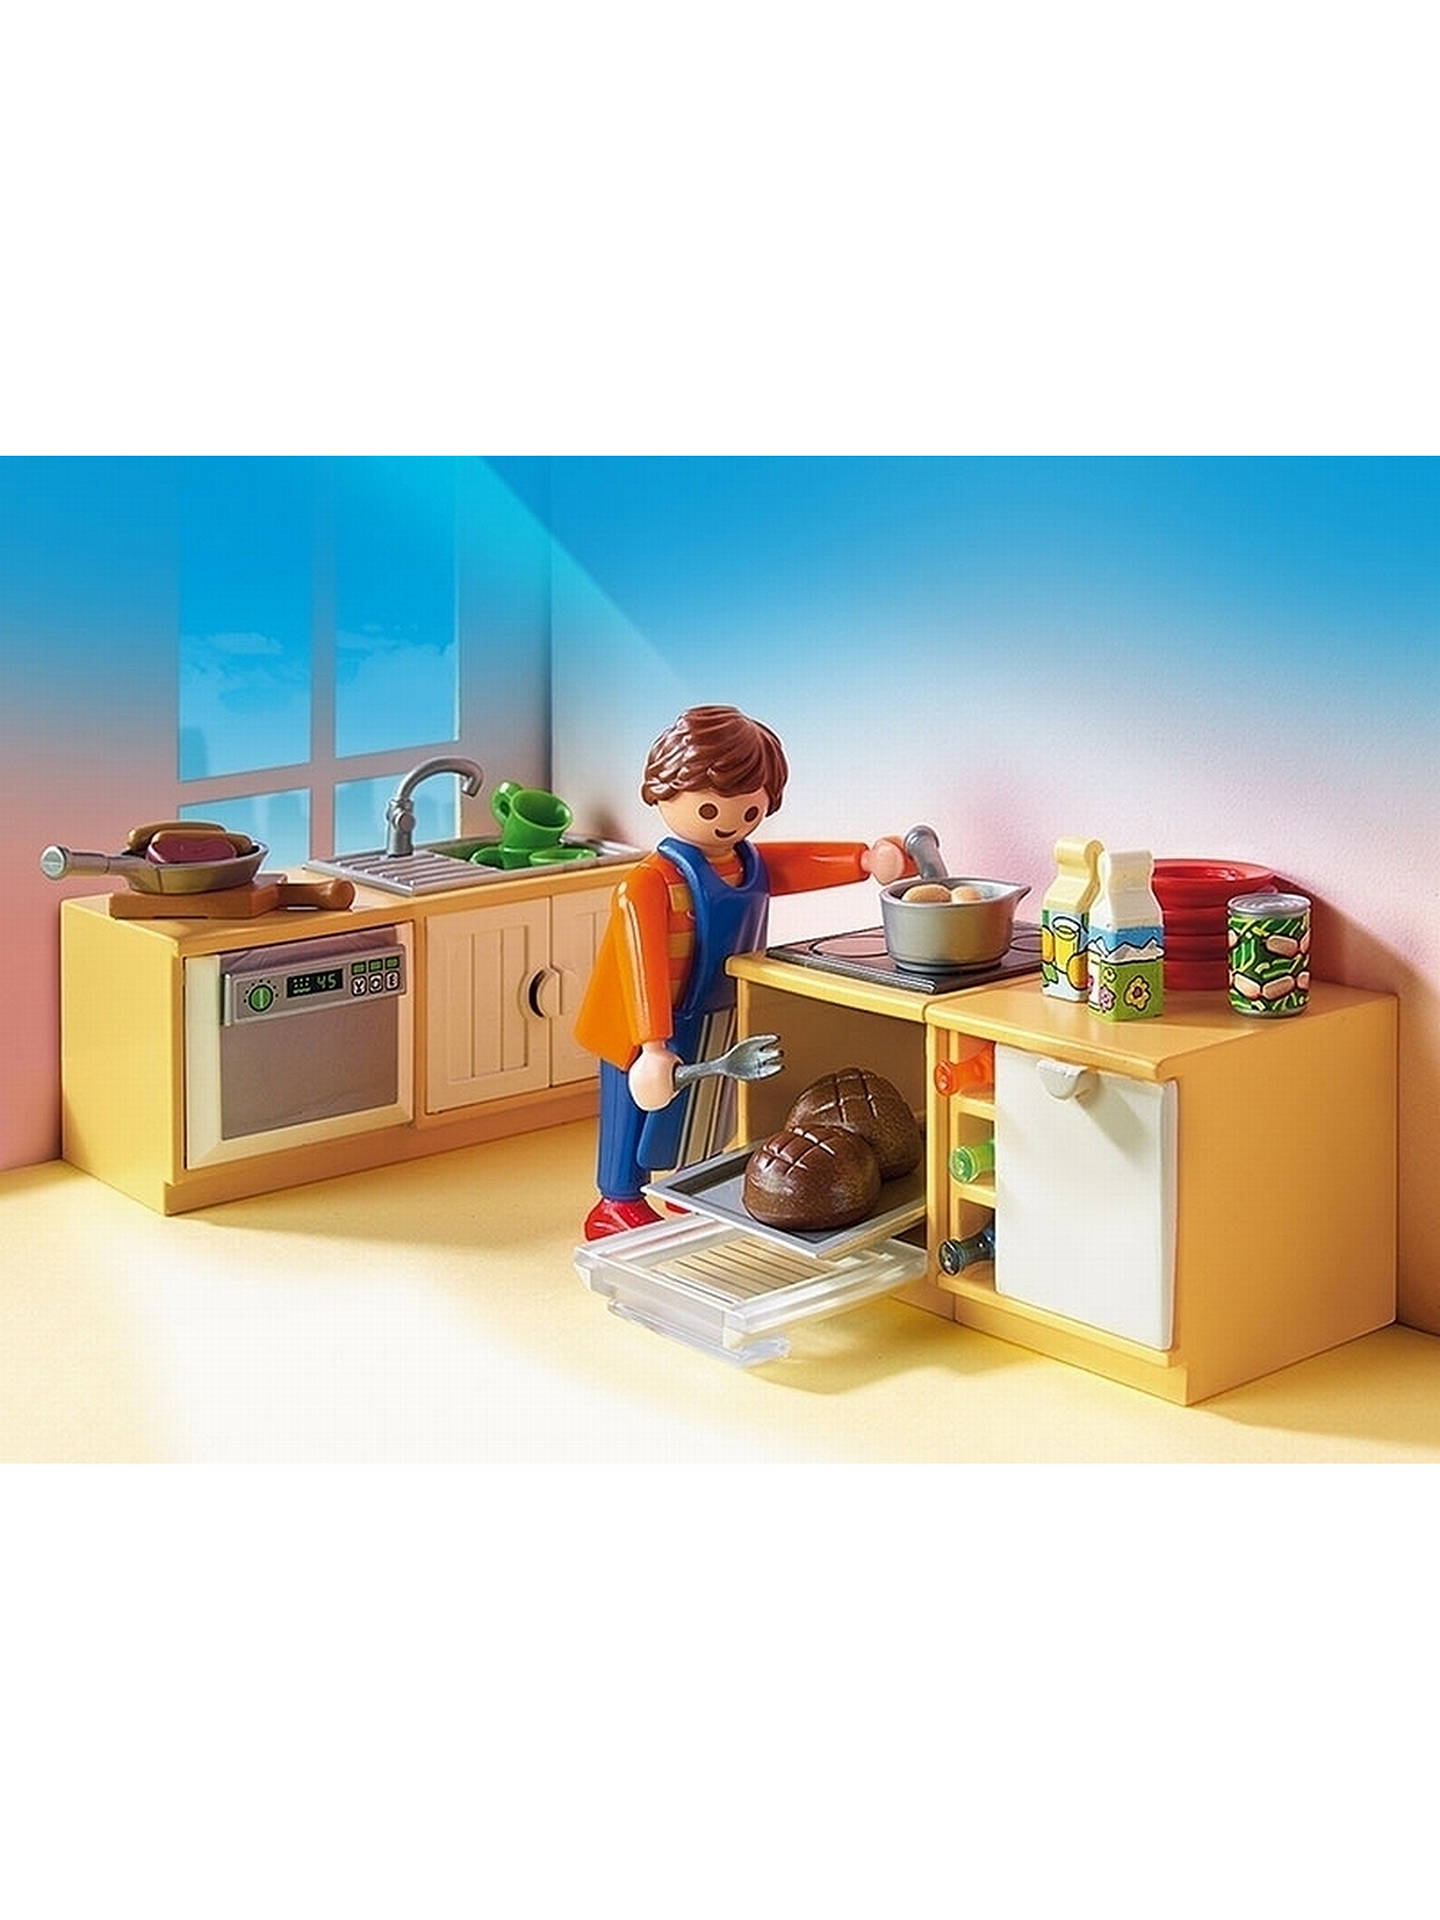 Buy Playmobil Dollhouse 5336 Country Kitchen Online at johnlewis.com